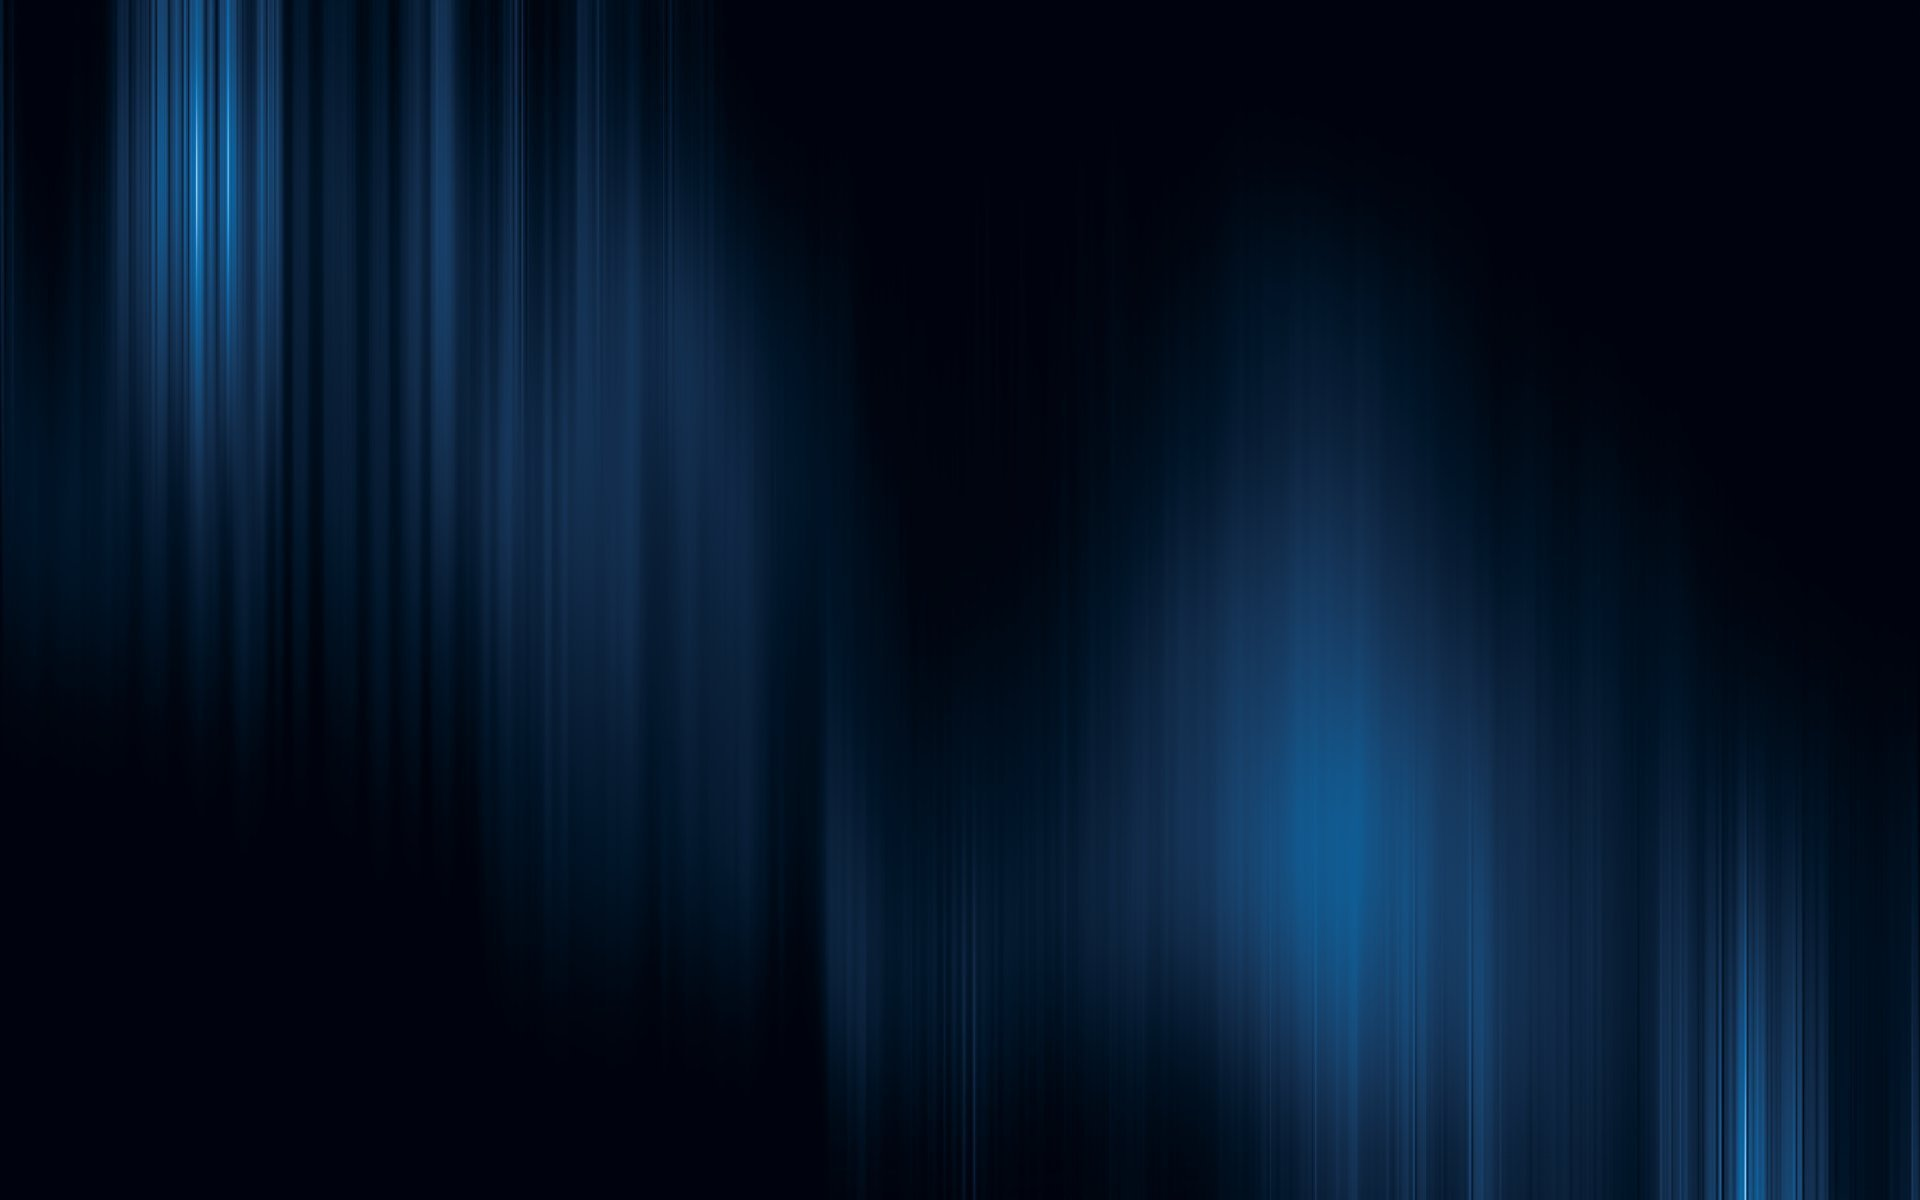 Black background blue stripes light wallpapers photos pictures women 1920x1200